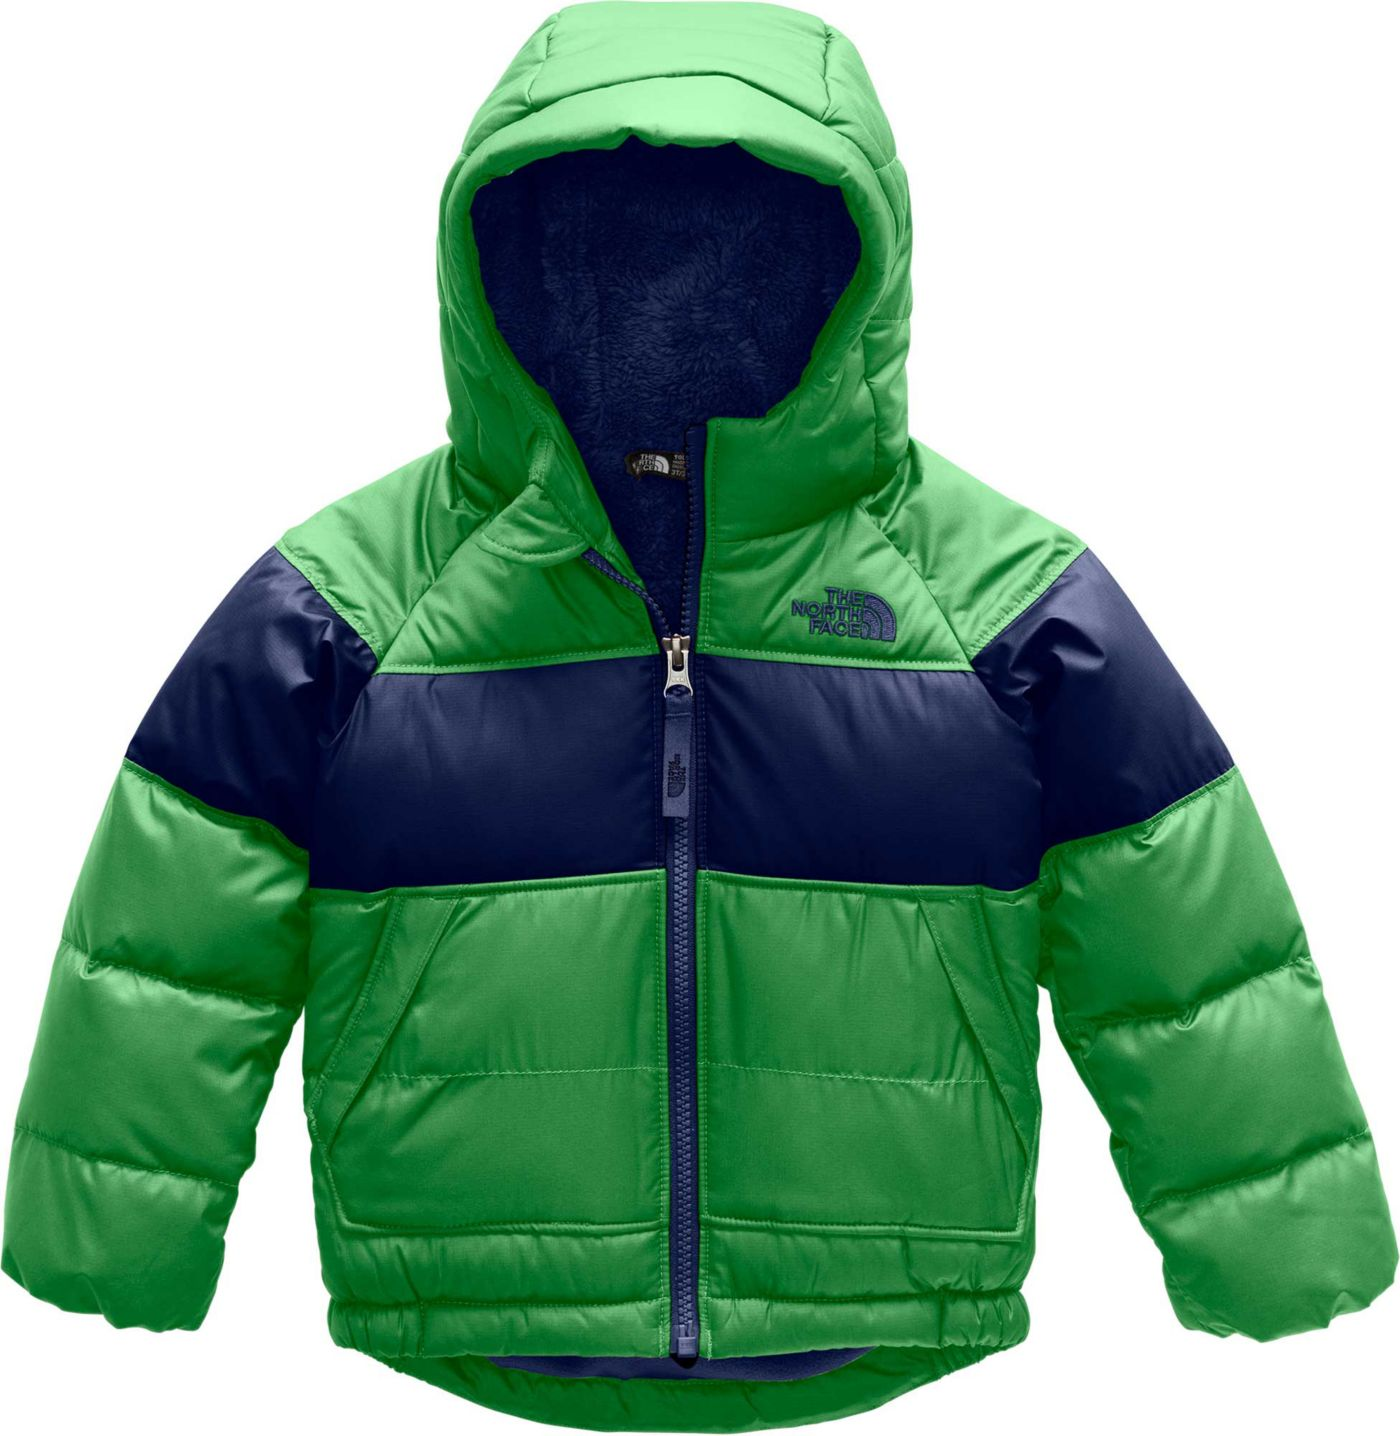 The North Face Toddler Boys' Moondoggy 2.0 Down Jacket